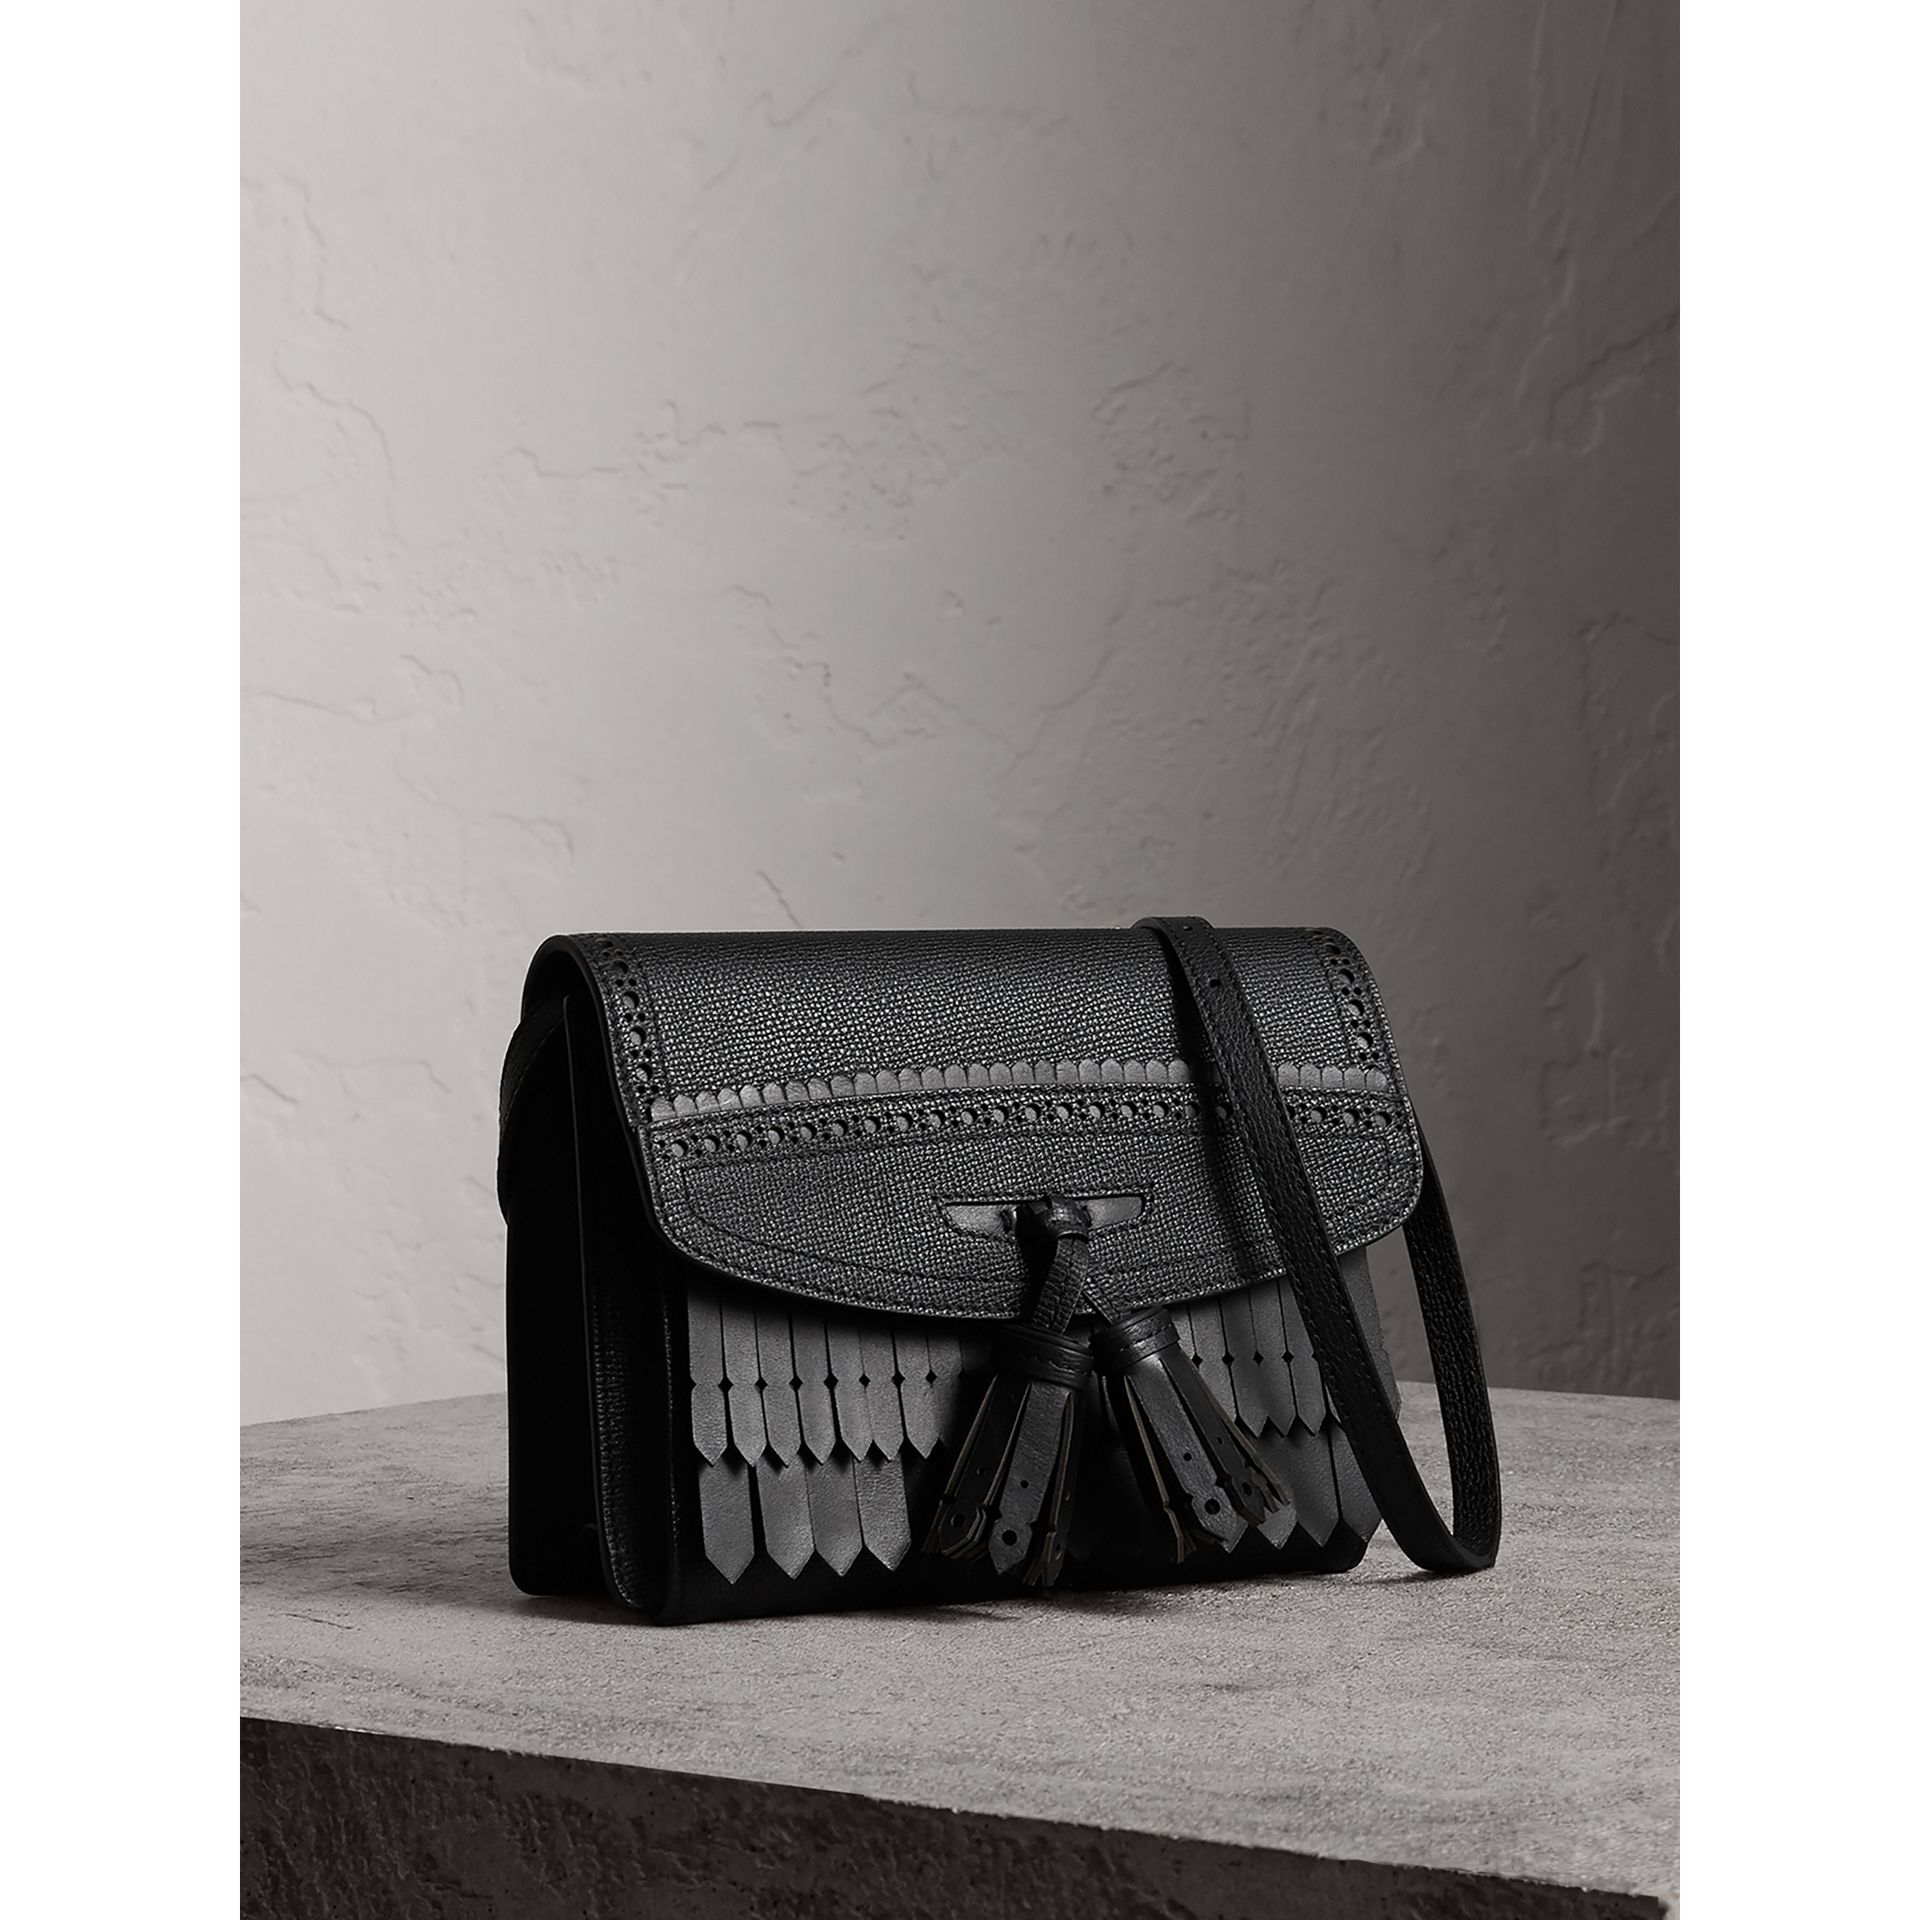 Brogue and Fringe Detail Leather Crossbody Bag in Black - Women | Burberry United Kingdom - gallery image 5